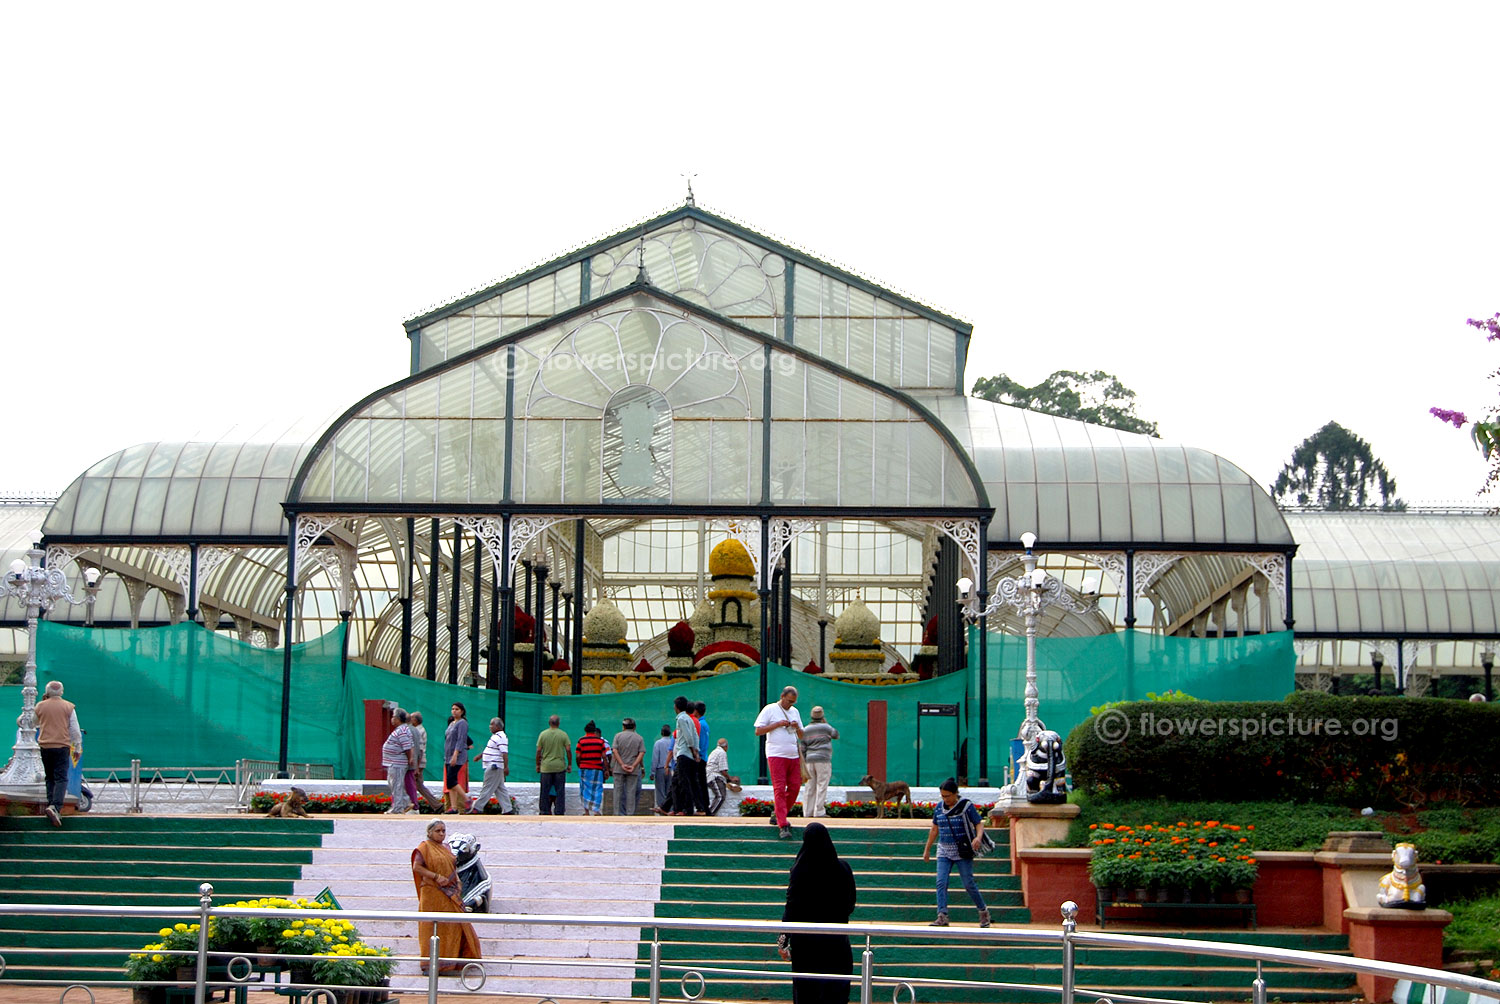 Lalbagh flower show august 2014 photos independence day bangalore mysore palace - Glass house show ...